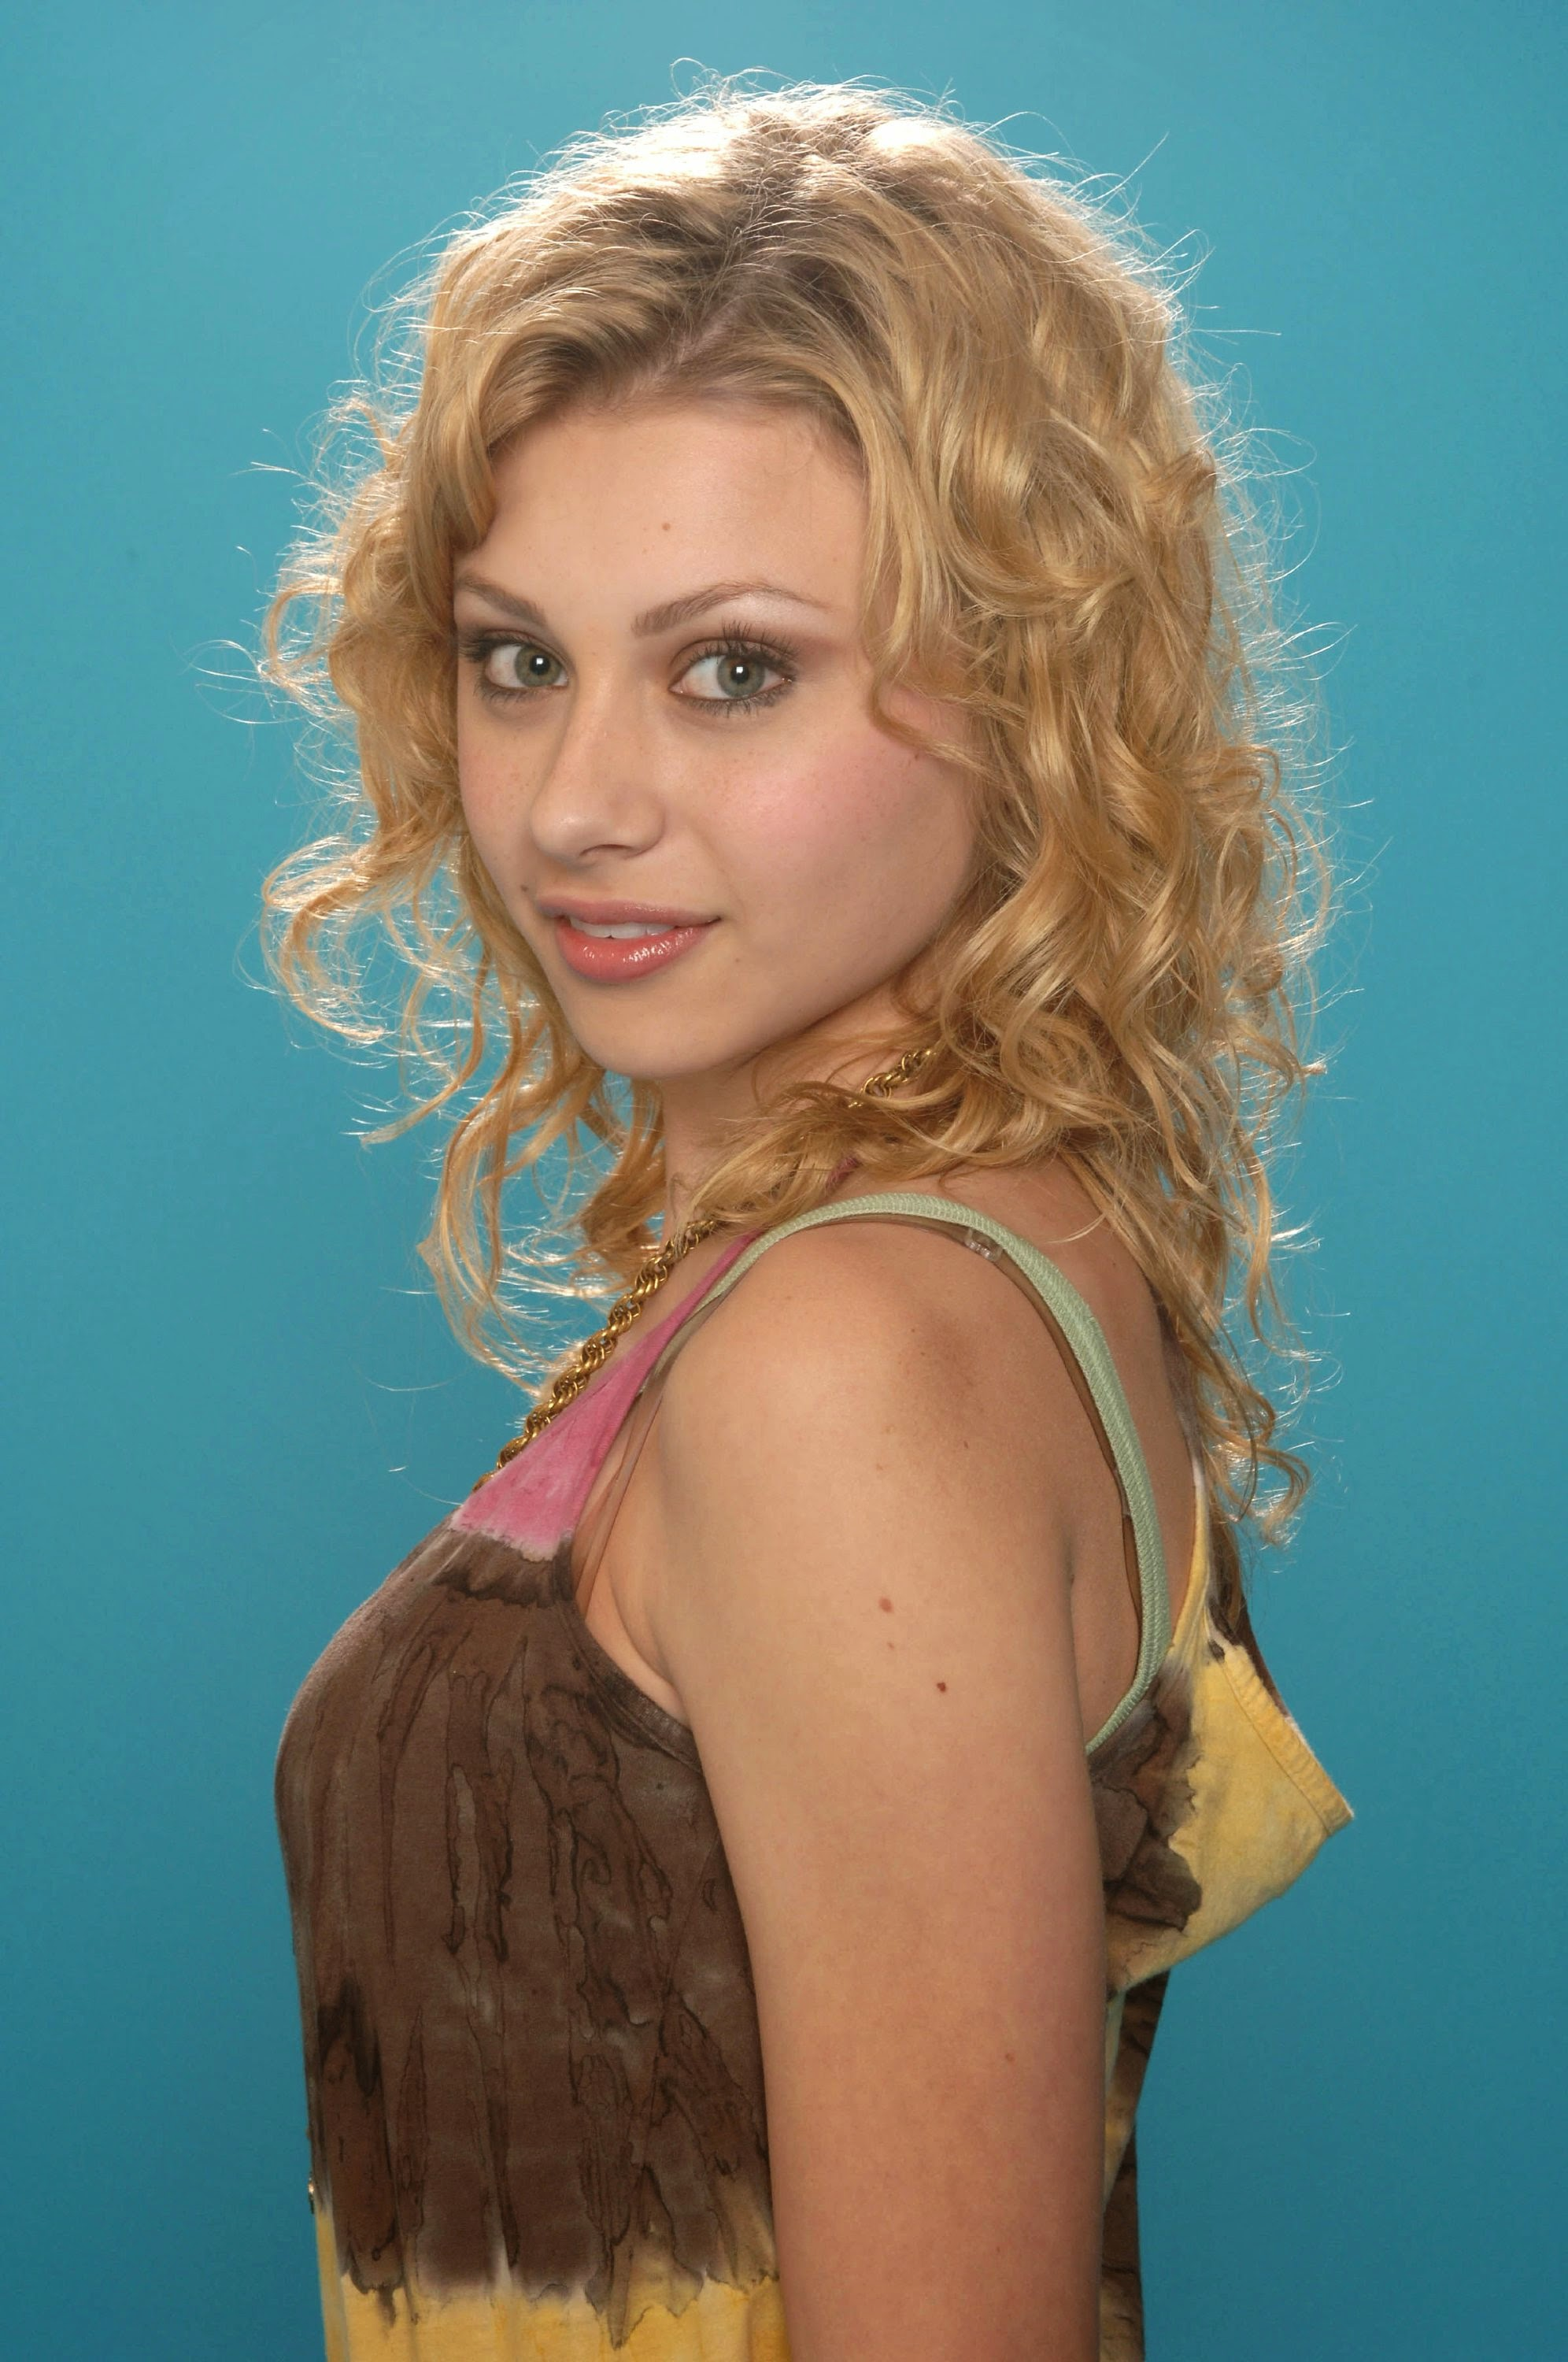 Alyson Aly Michalka Nude Photos 15